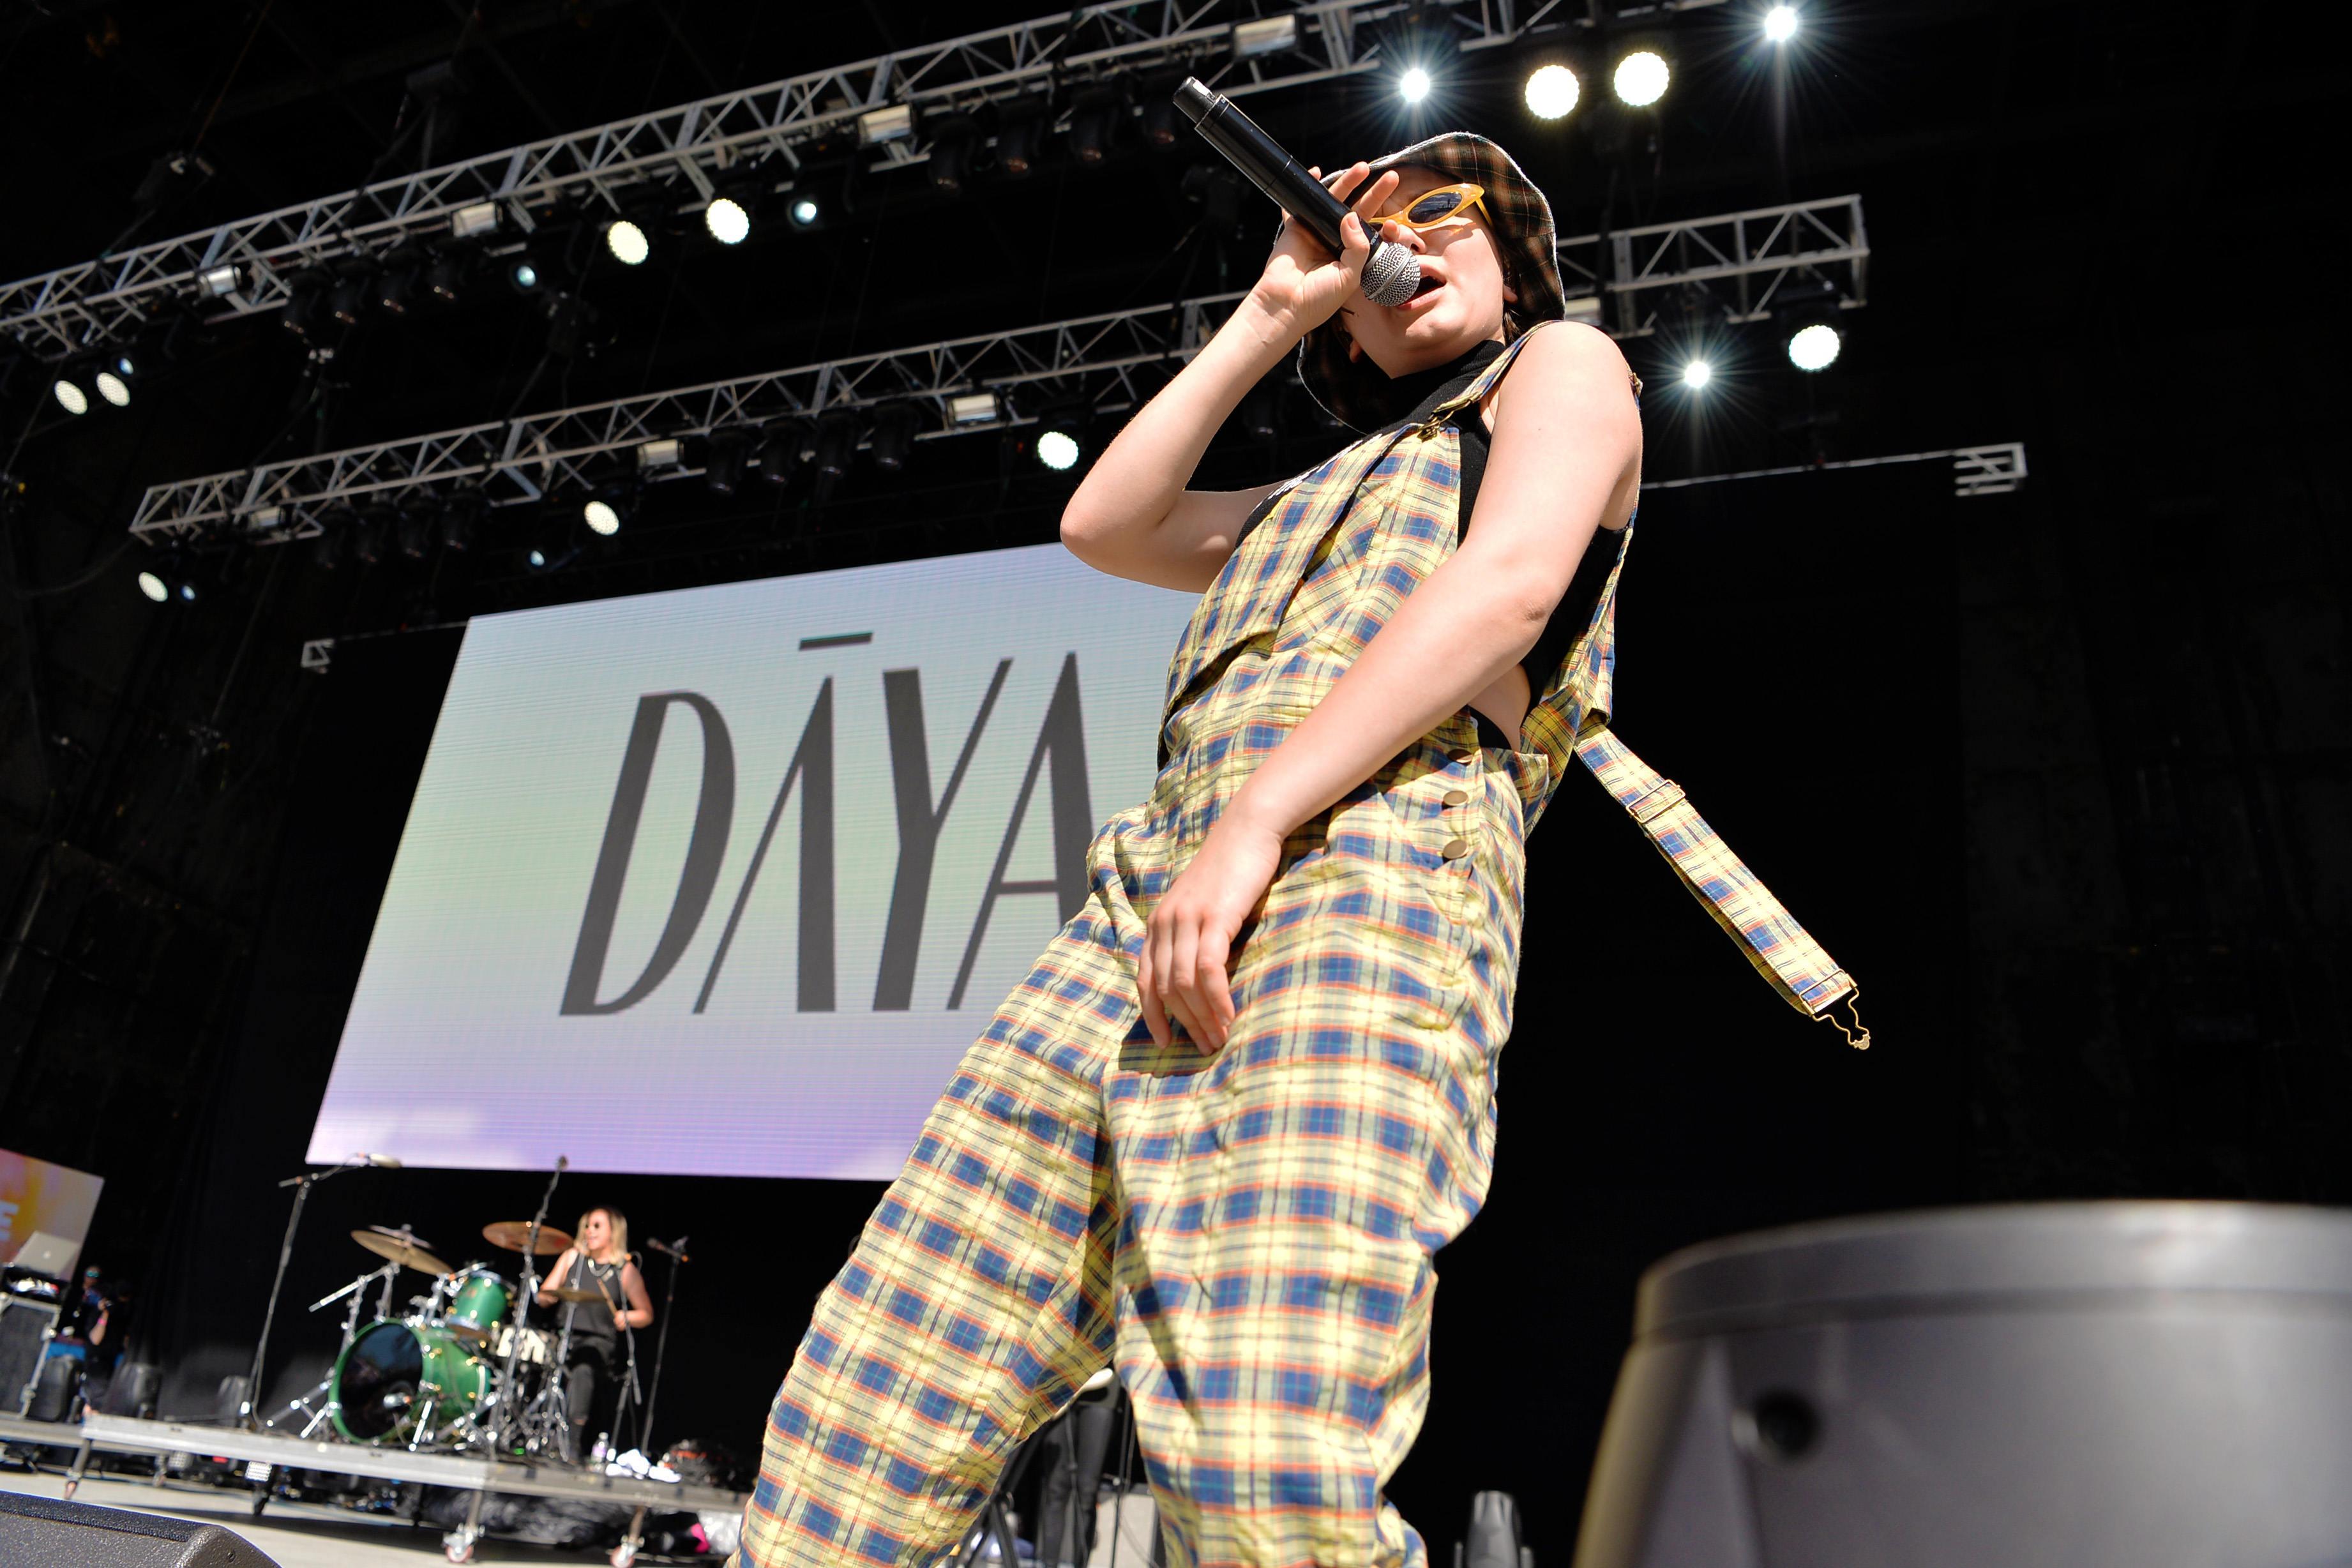 Daya performing at LOVELOUD powered by AT&T